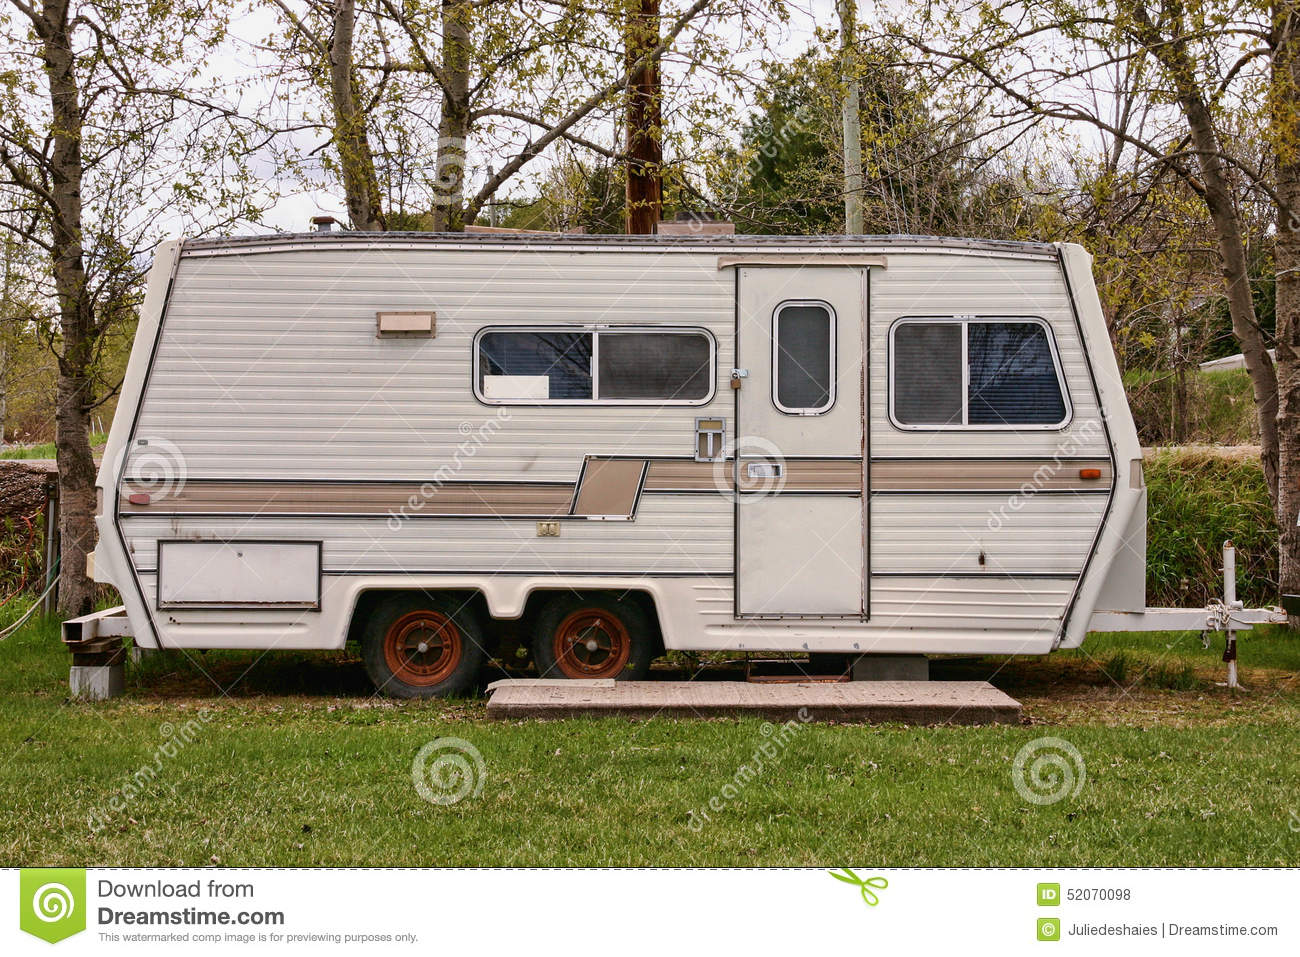 Vintage camping trailer stock photo. Image of traveling ...